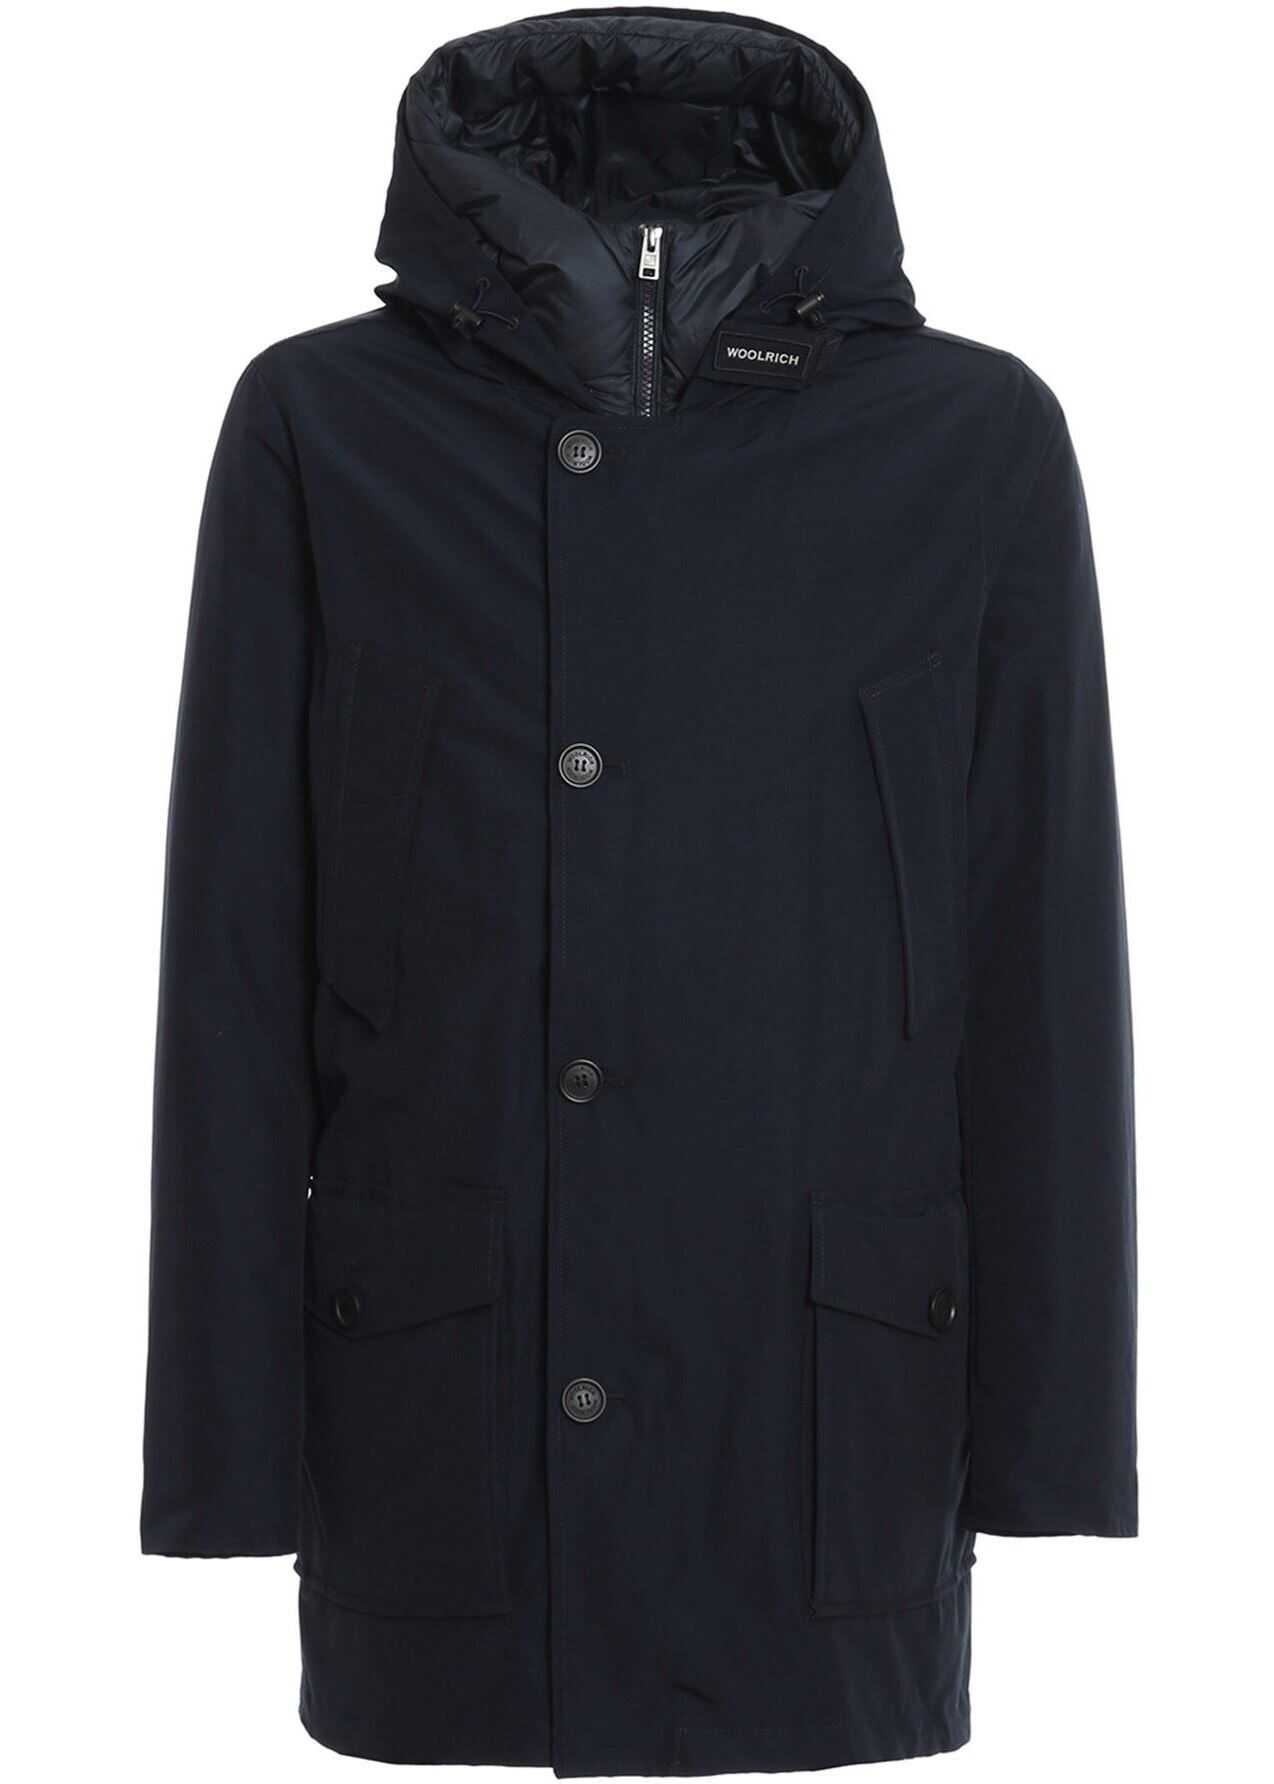 Woolrich Eco Parka 3 In 1 Coat In Blue Blue imagine